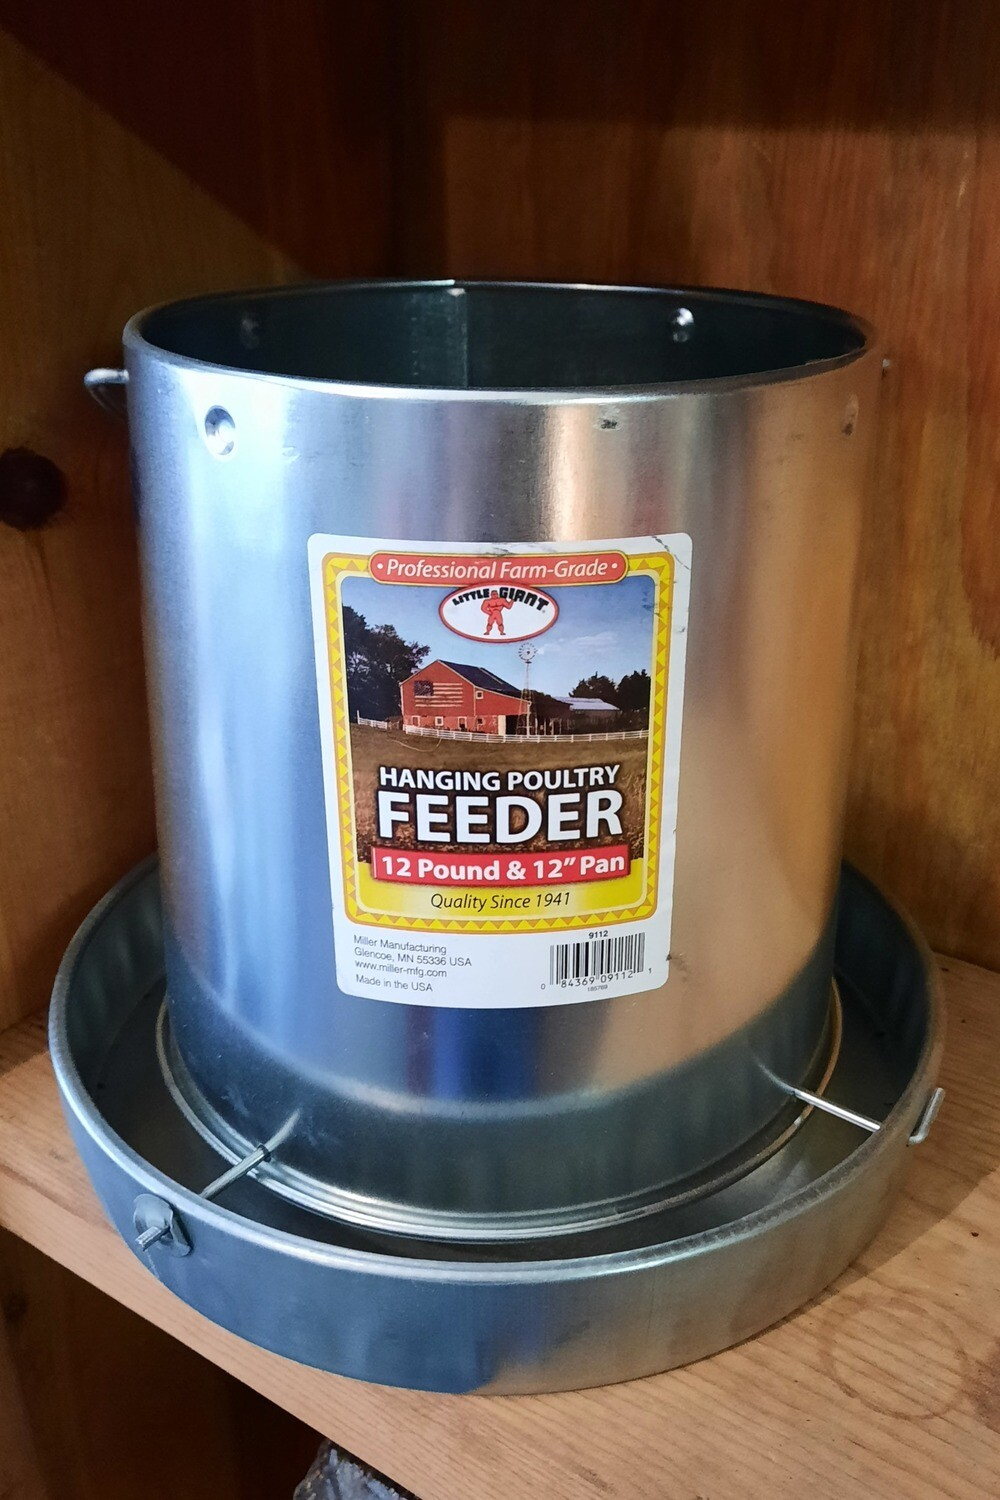 12 lb. Hanging Galvanized Poultry Feeder